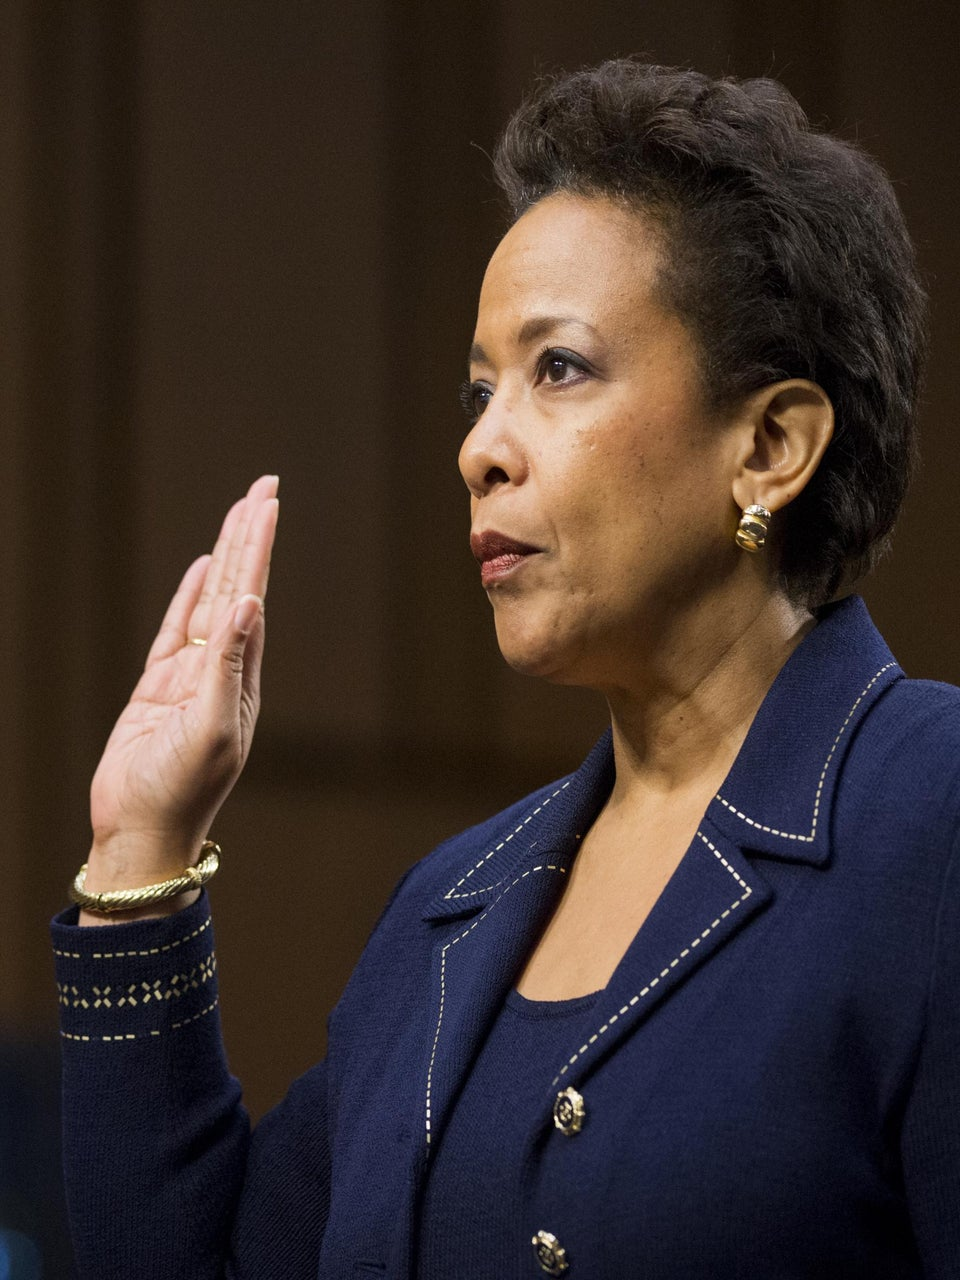 Senator Equates Loretta Lynch's Prolonged Confirmation With Making Her Sit in the 'Back of the Bus'